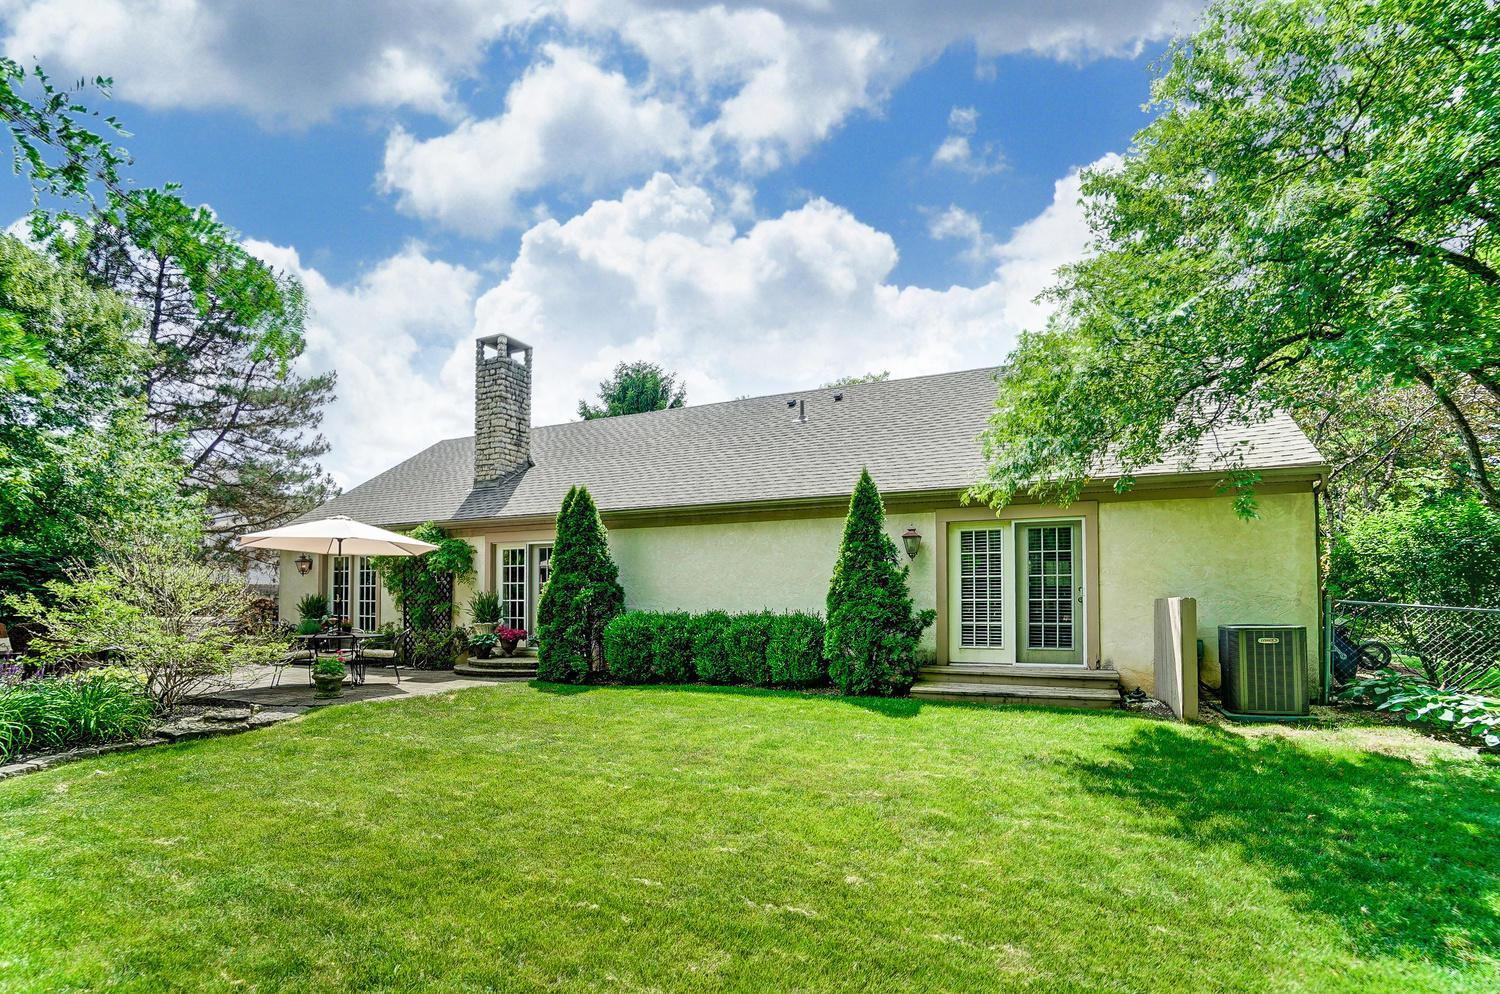 2280 Picket Post Lane, Upper Arlington, OH 43220